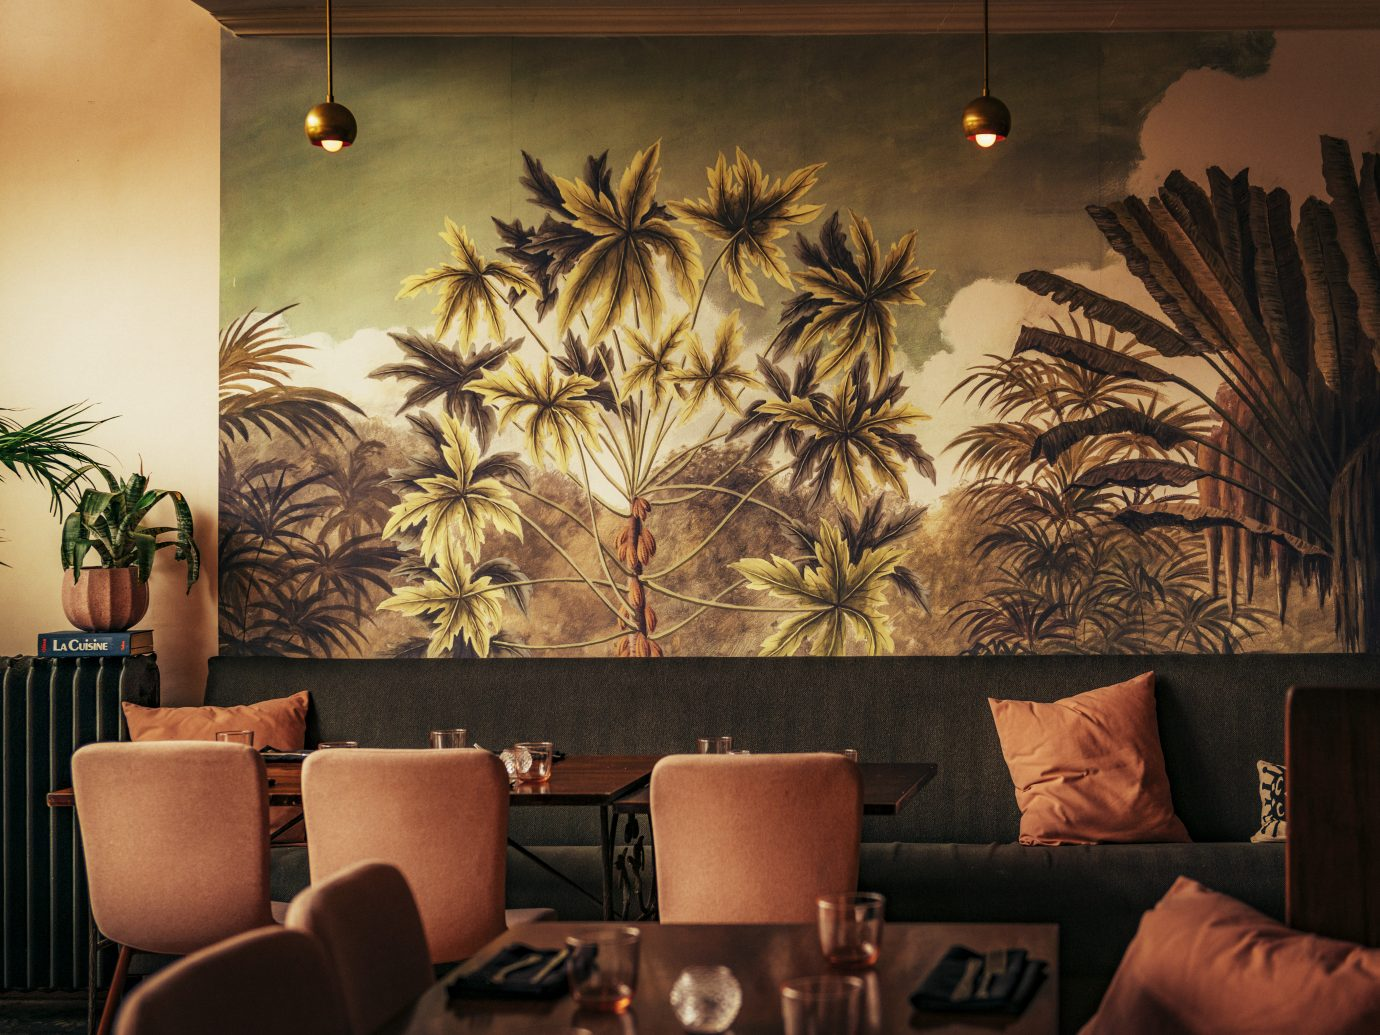 room with tables and a booth with a wall with palm trees